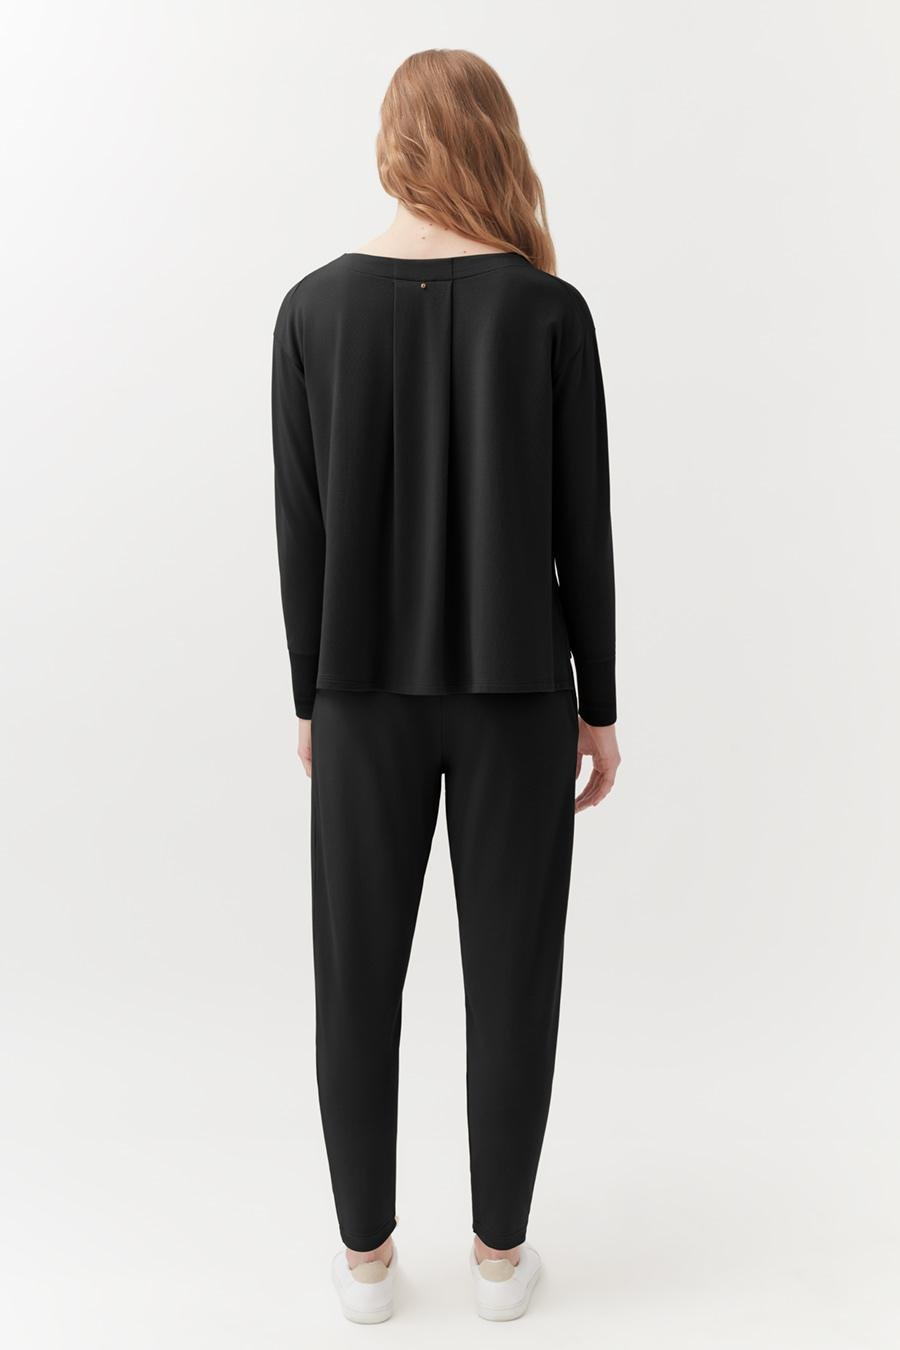 Women's French Terry Pleated Front Pant in Black   Size: 2